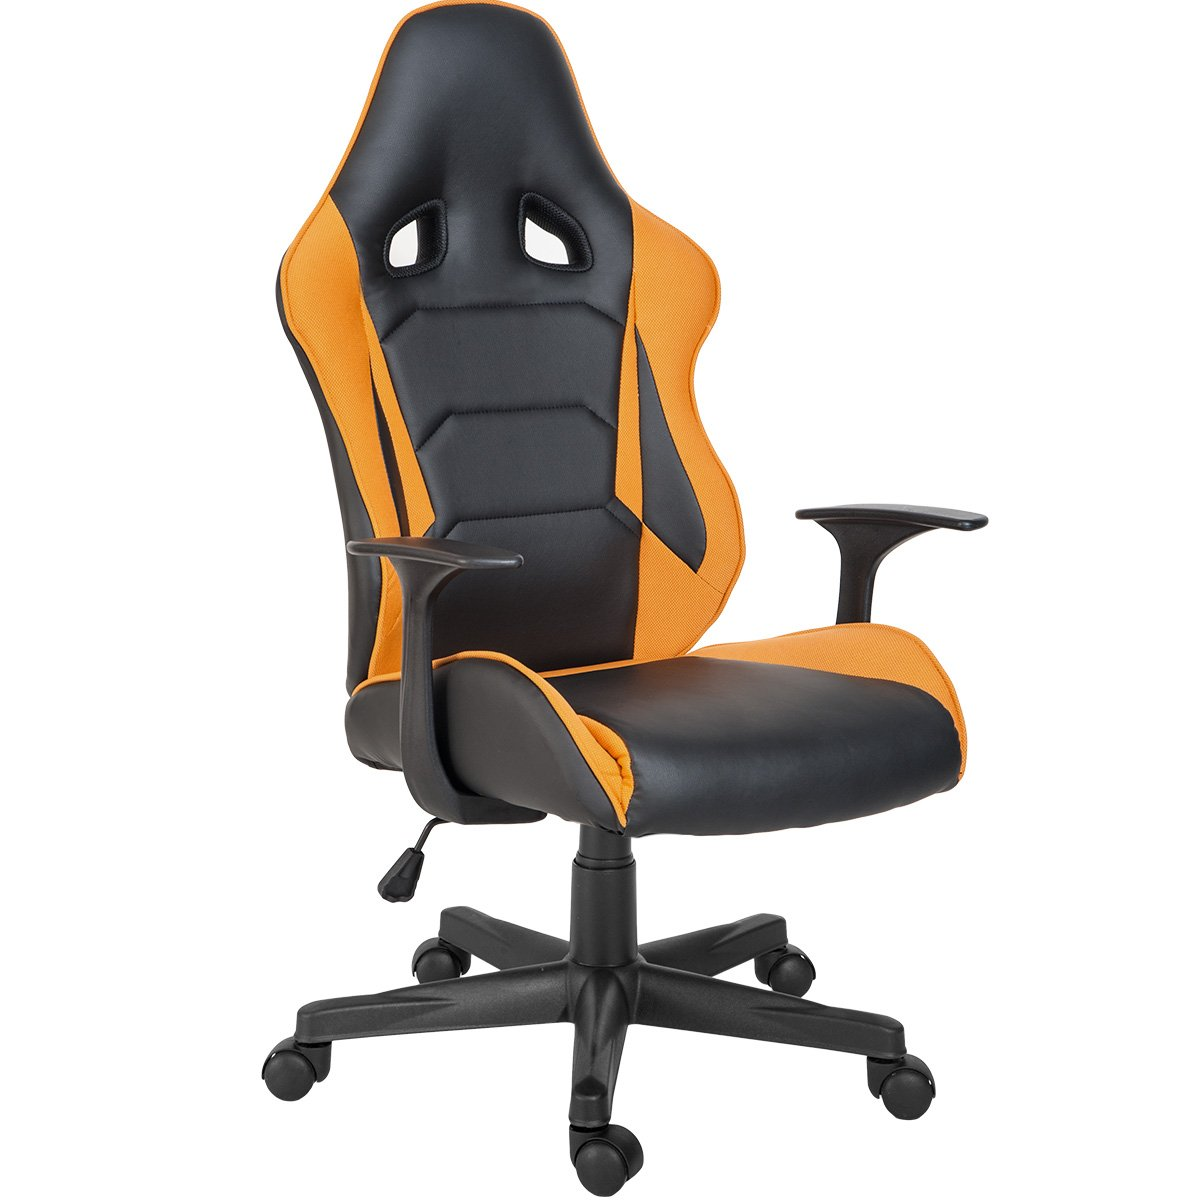 Modern Luxe Odyssey Series Executive Office Gaming Chair with Adjustable Lumbar Support and Headrest in Soft PU Leather and Mesh Fabric by Modern Luxe